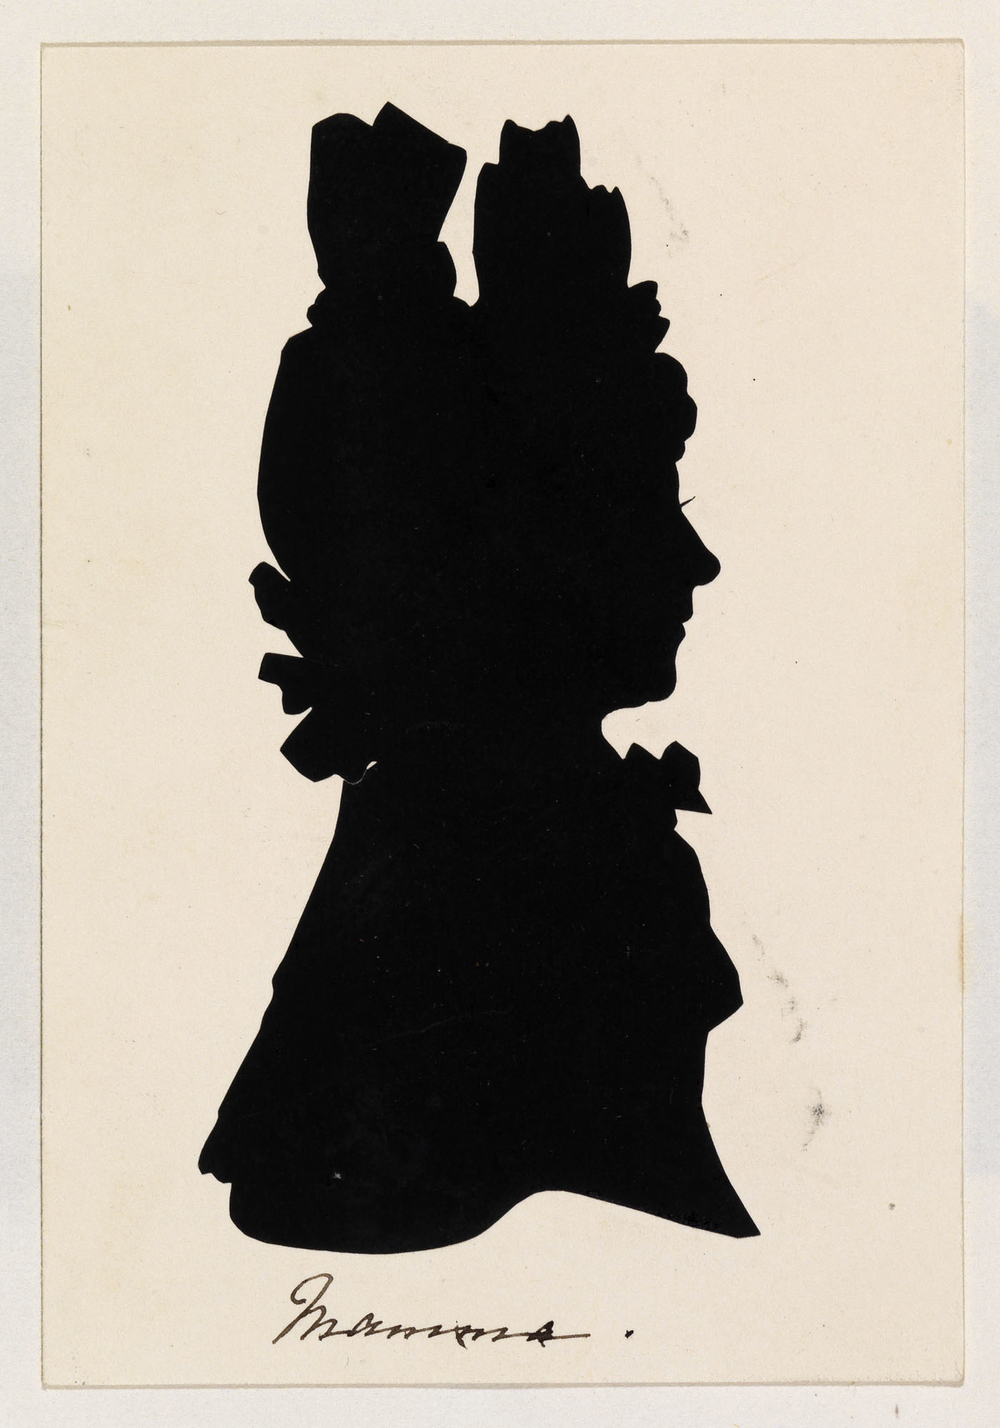 A silhouette showing a portrait of Princess Victoria's mother, the Duchess of Kent. She is shown bust-length and facing right in profile. She is wearing an elaborate headdress and a high frilled collar. Inscribed below: Mamma.